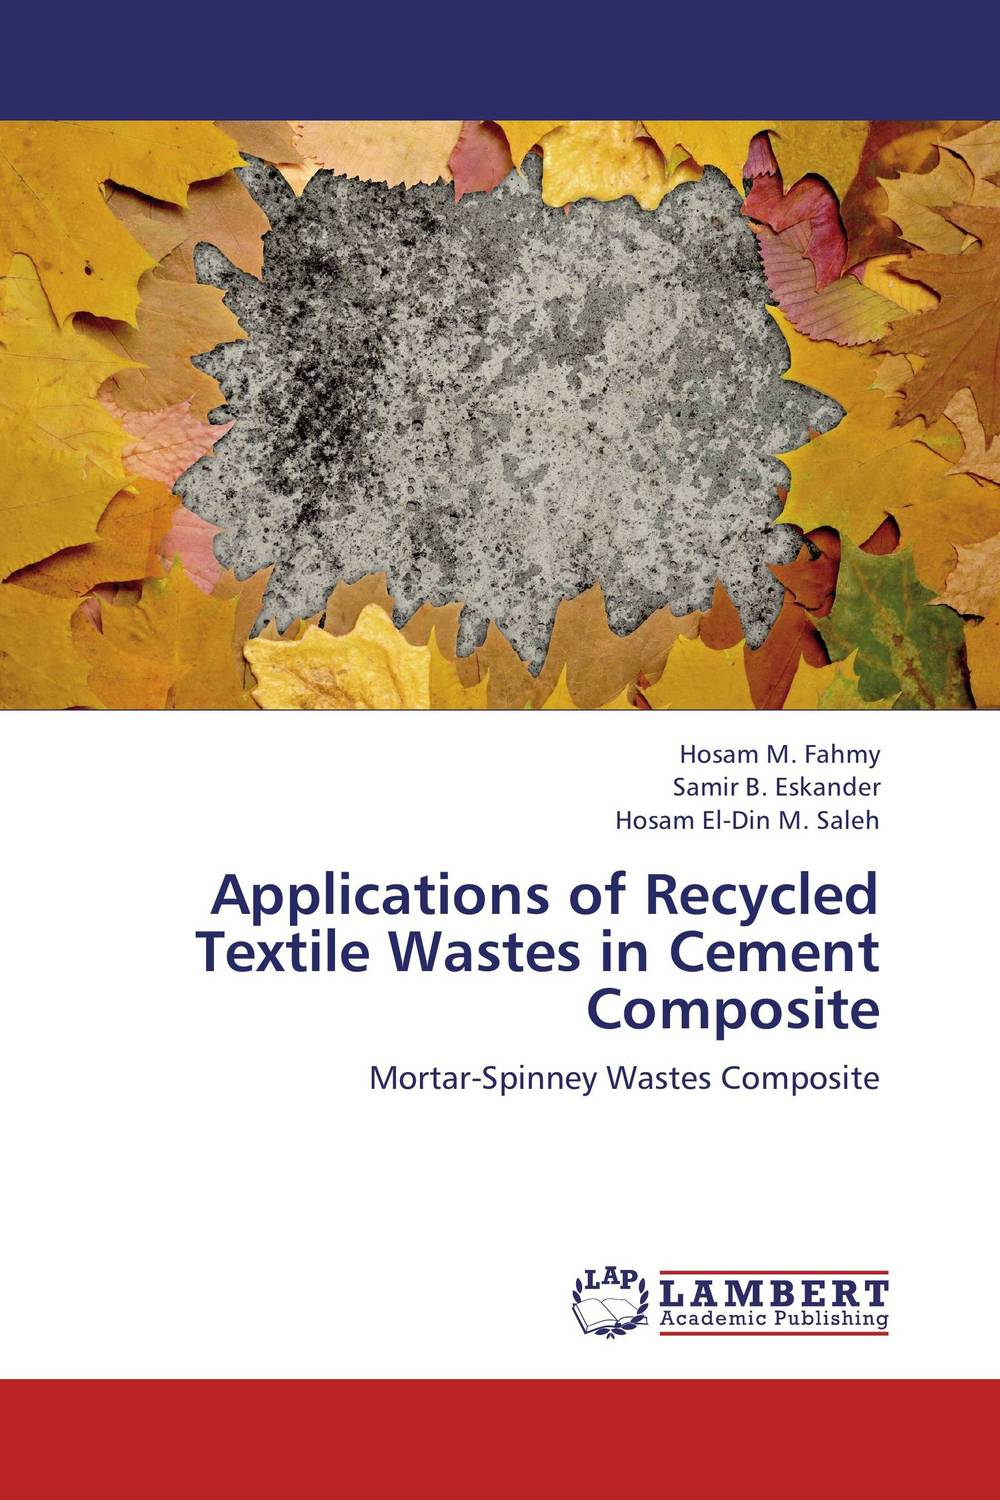 Applications of Recycled Textile Wastes in Cement Composite enzyme applications in textile processing & finishing